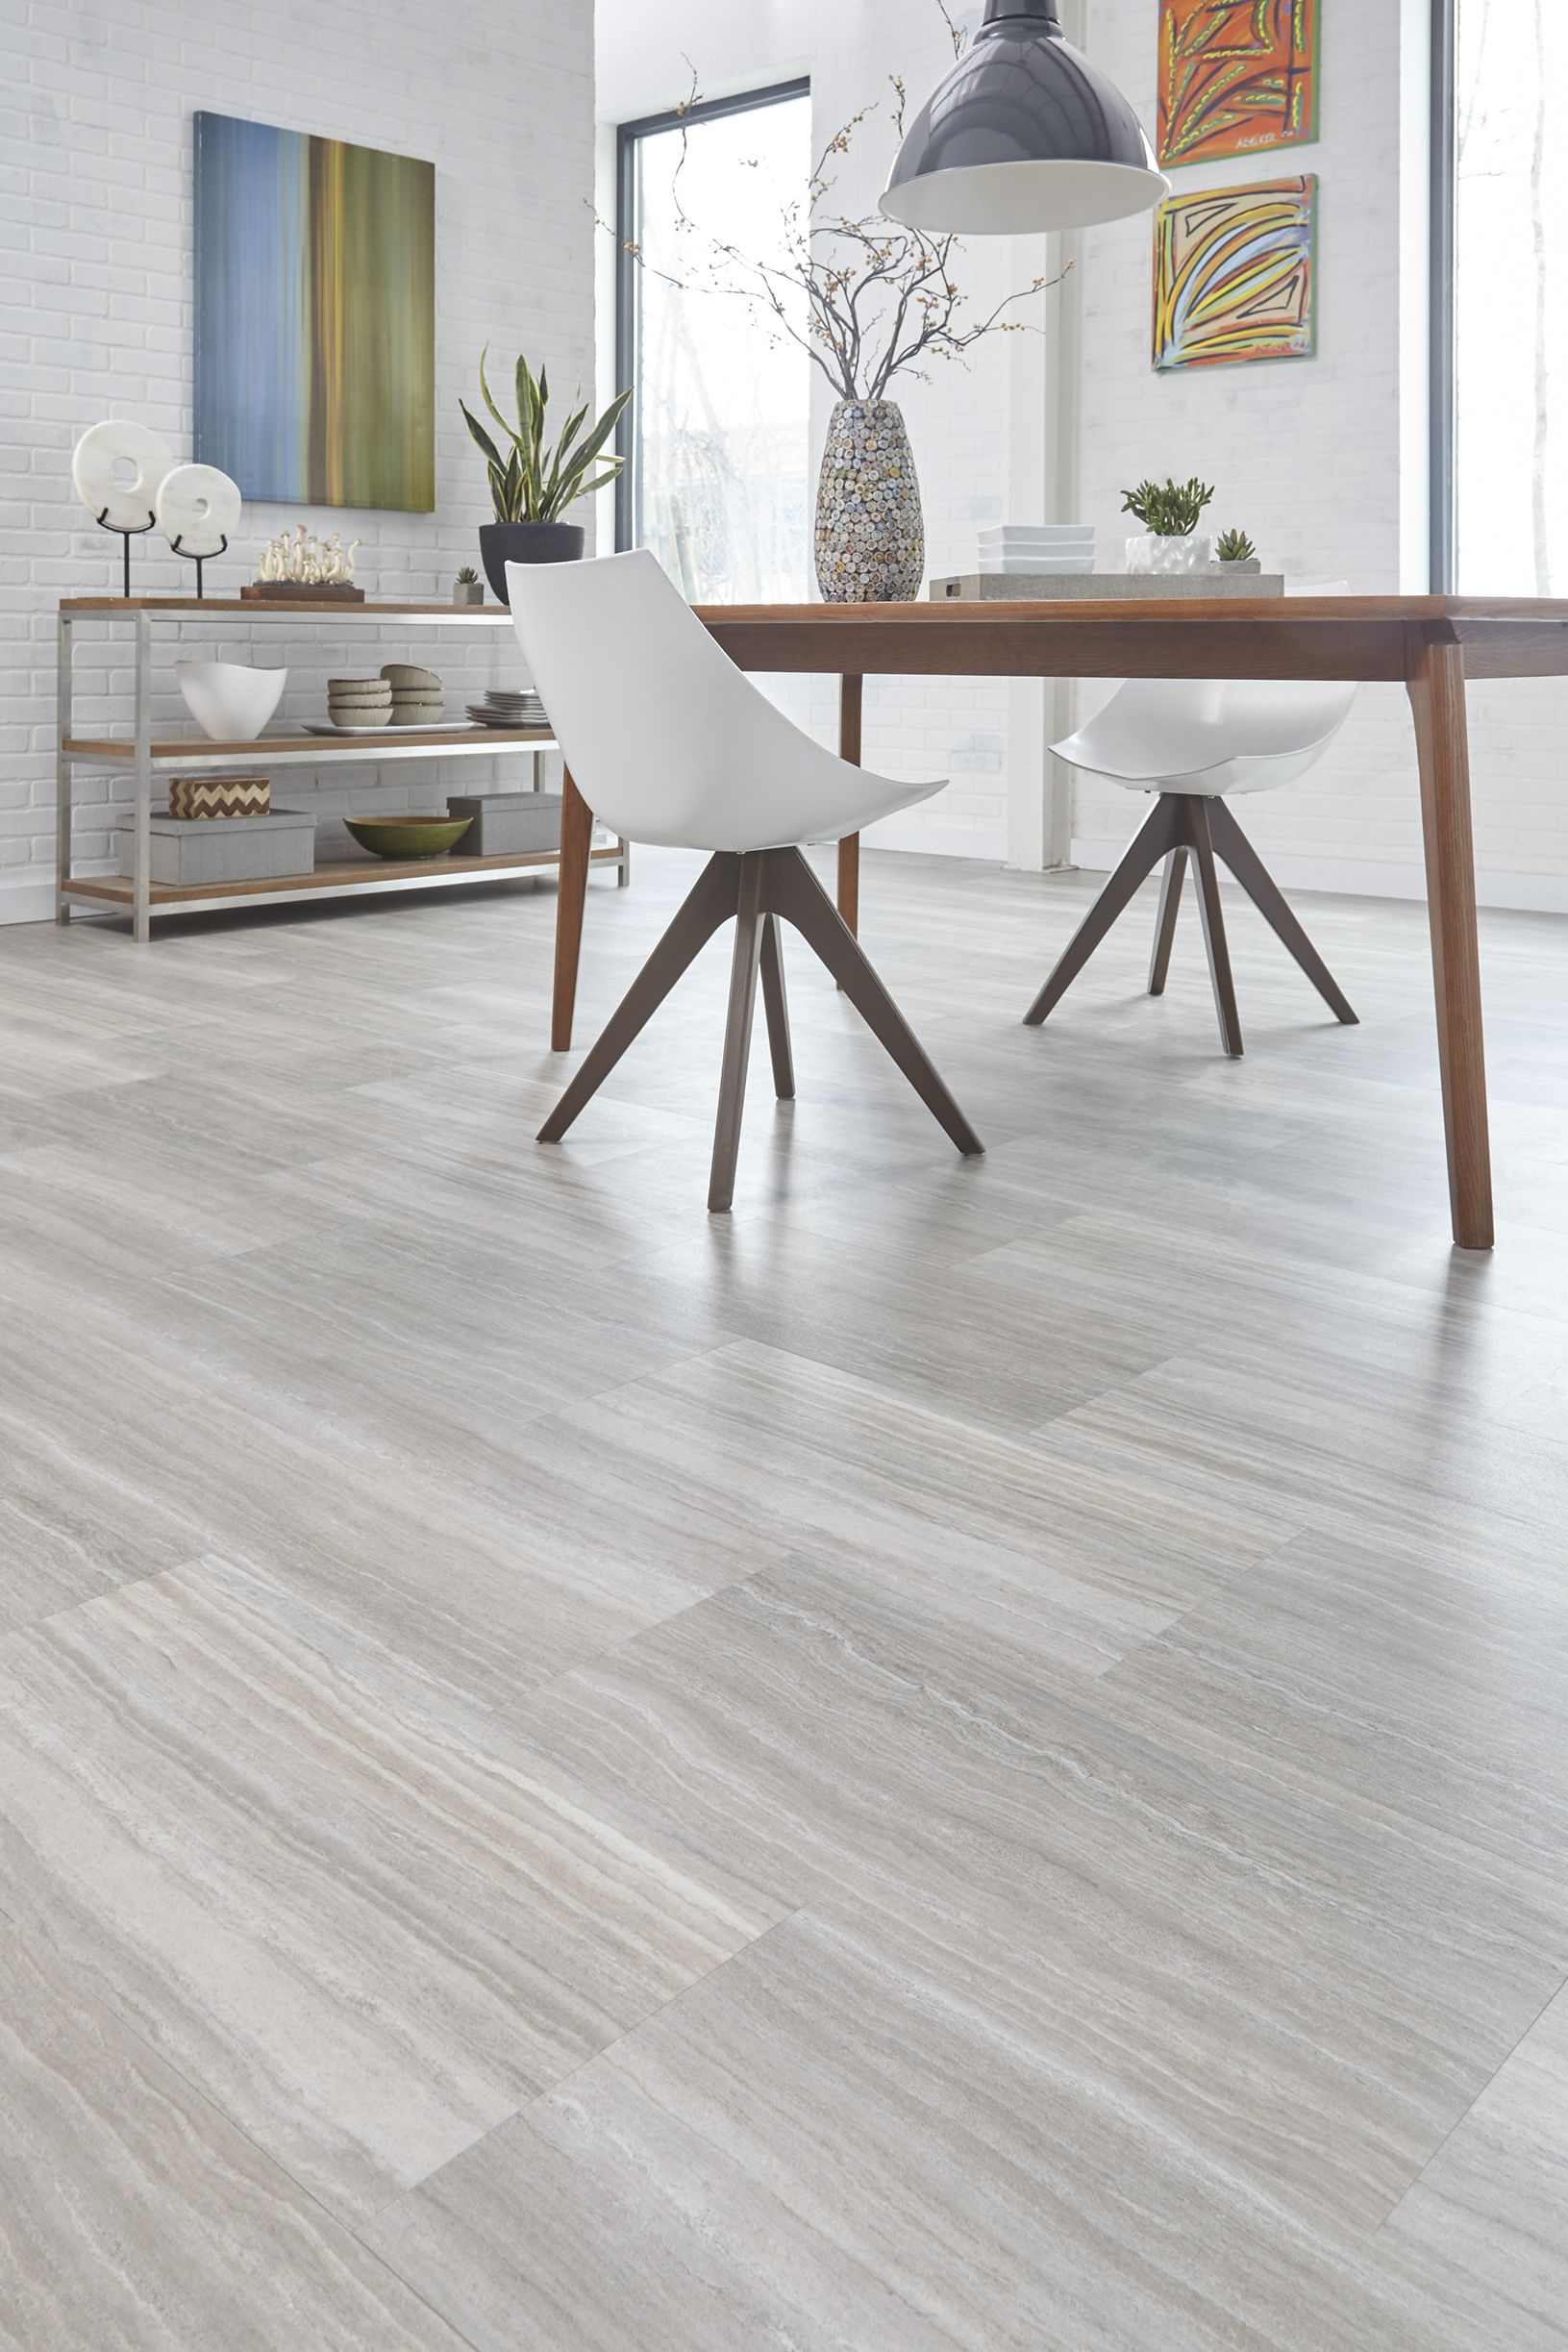 Stainmaster 18 In X 36 In Manor Travertine Luxury Vinyl Tile Grey Vinyl Plank Flooring Tile Floor Living Room Gray Wood Tile Flooring